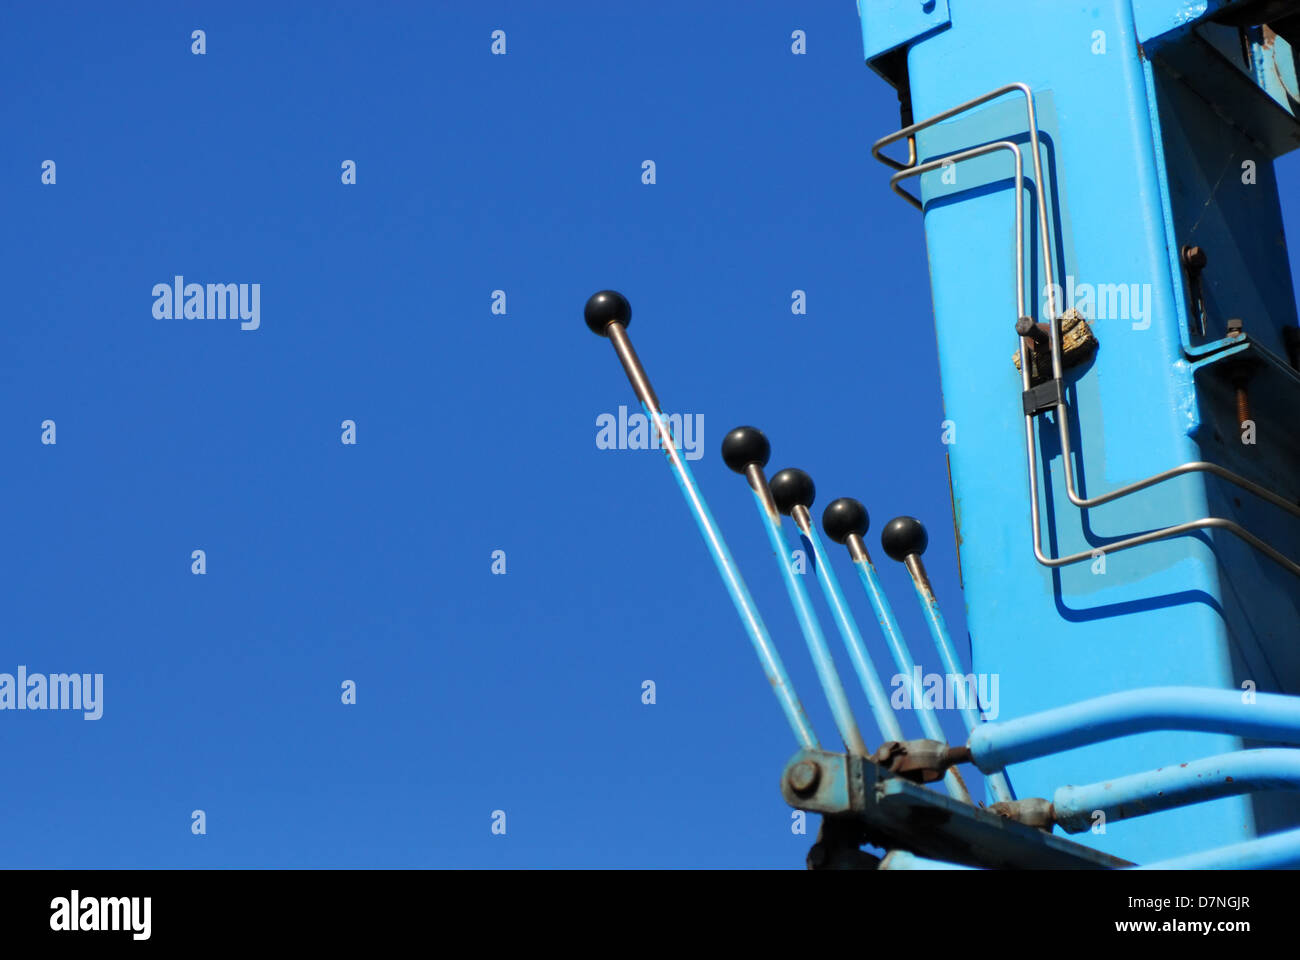 Control levers against clear blue sky. - Stock Image